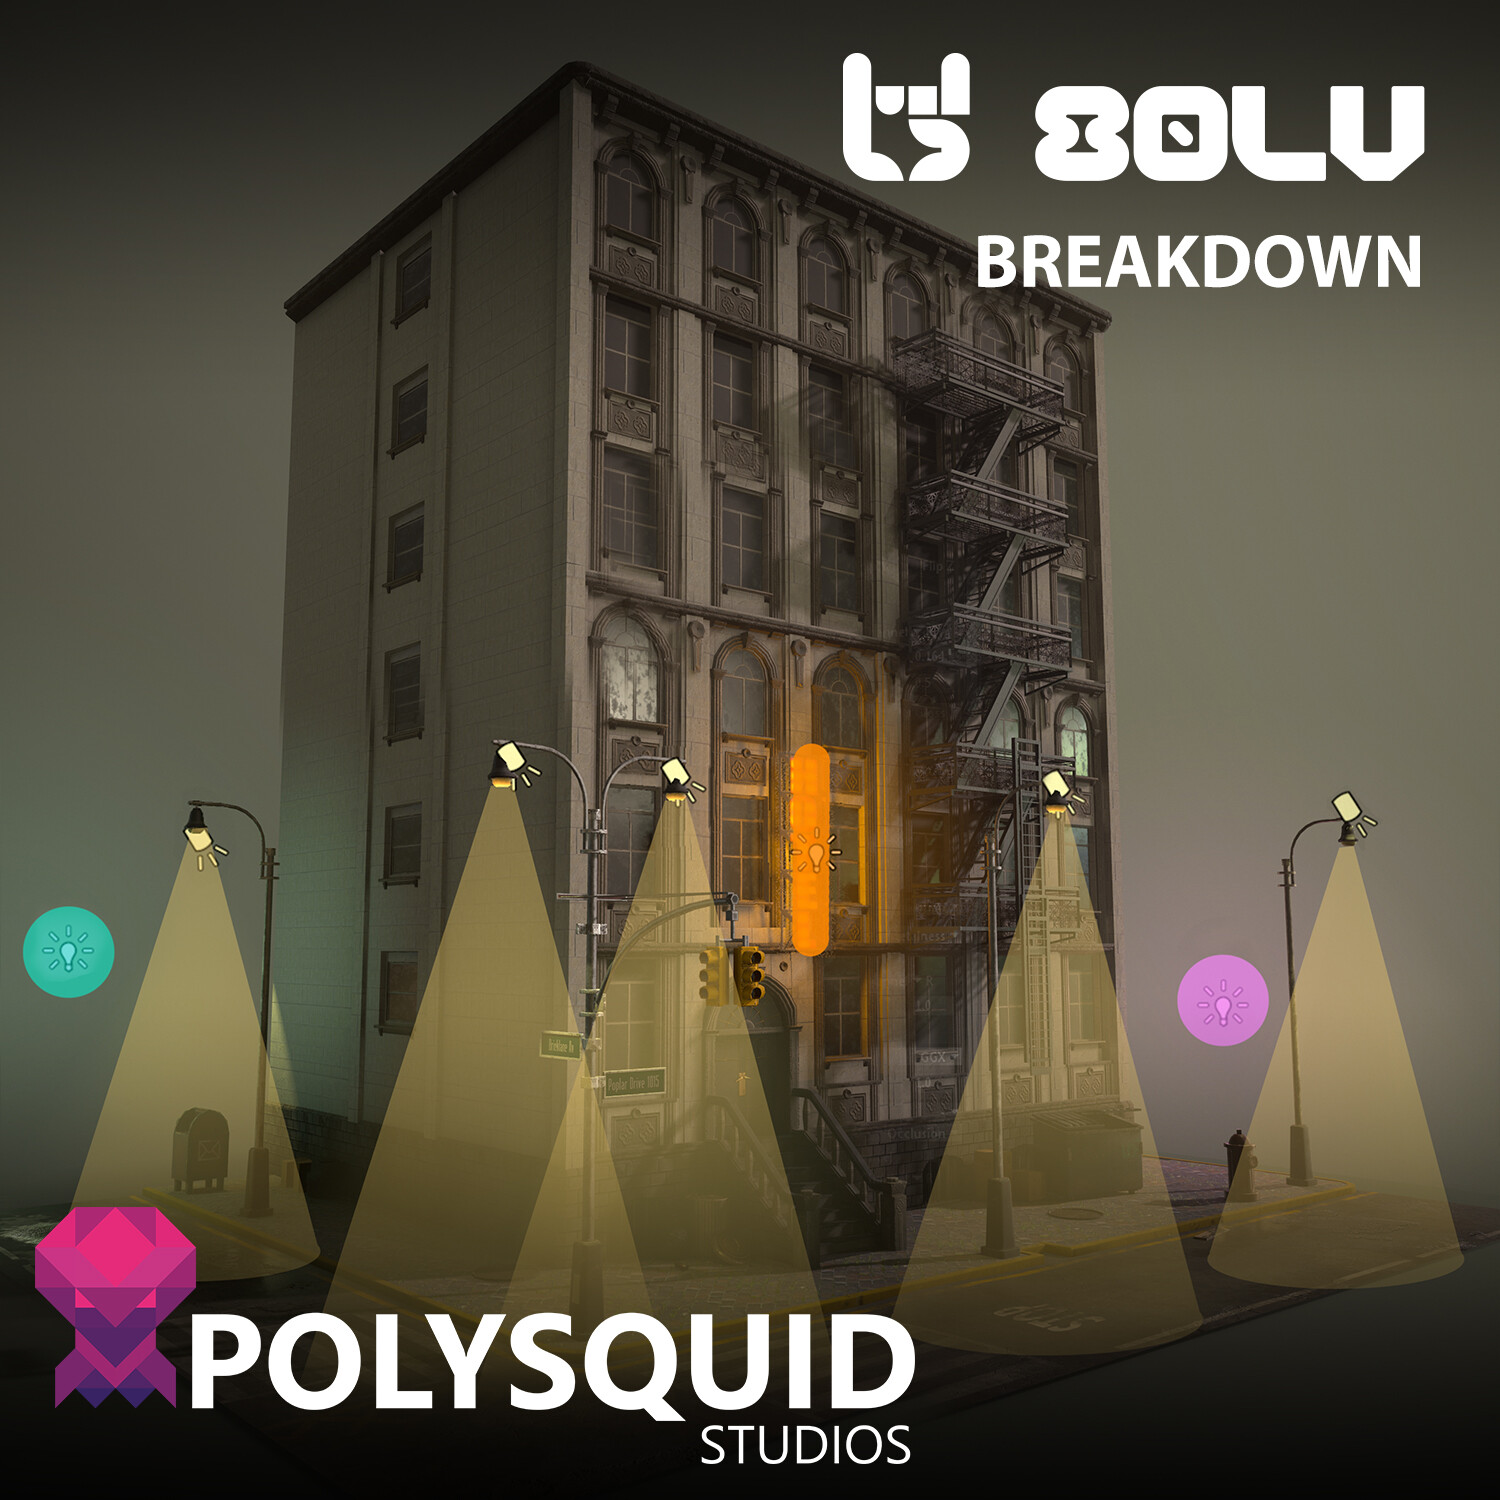 Modular NYC Buildings - Breakdown